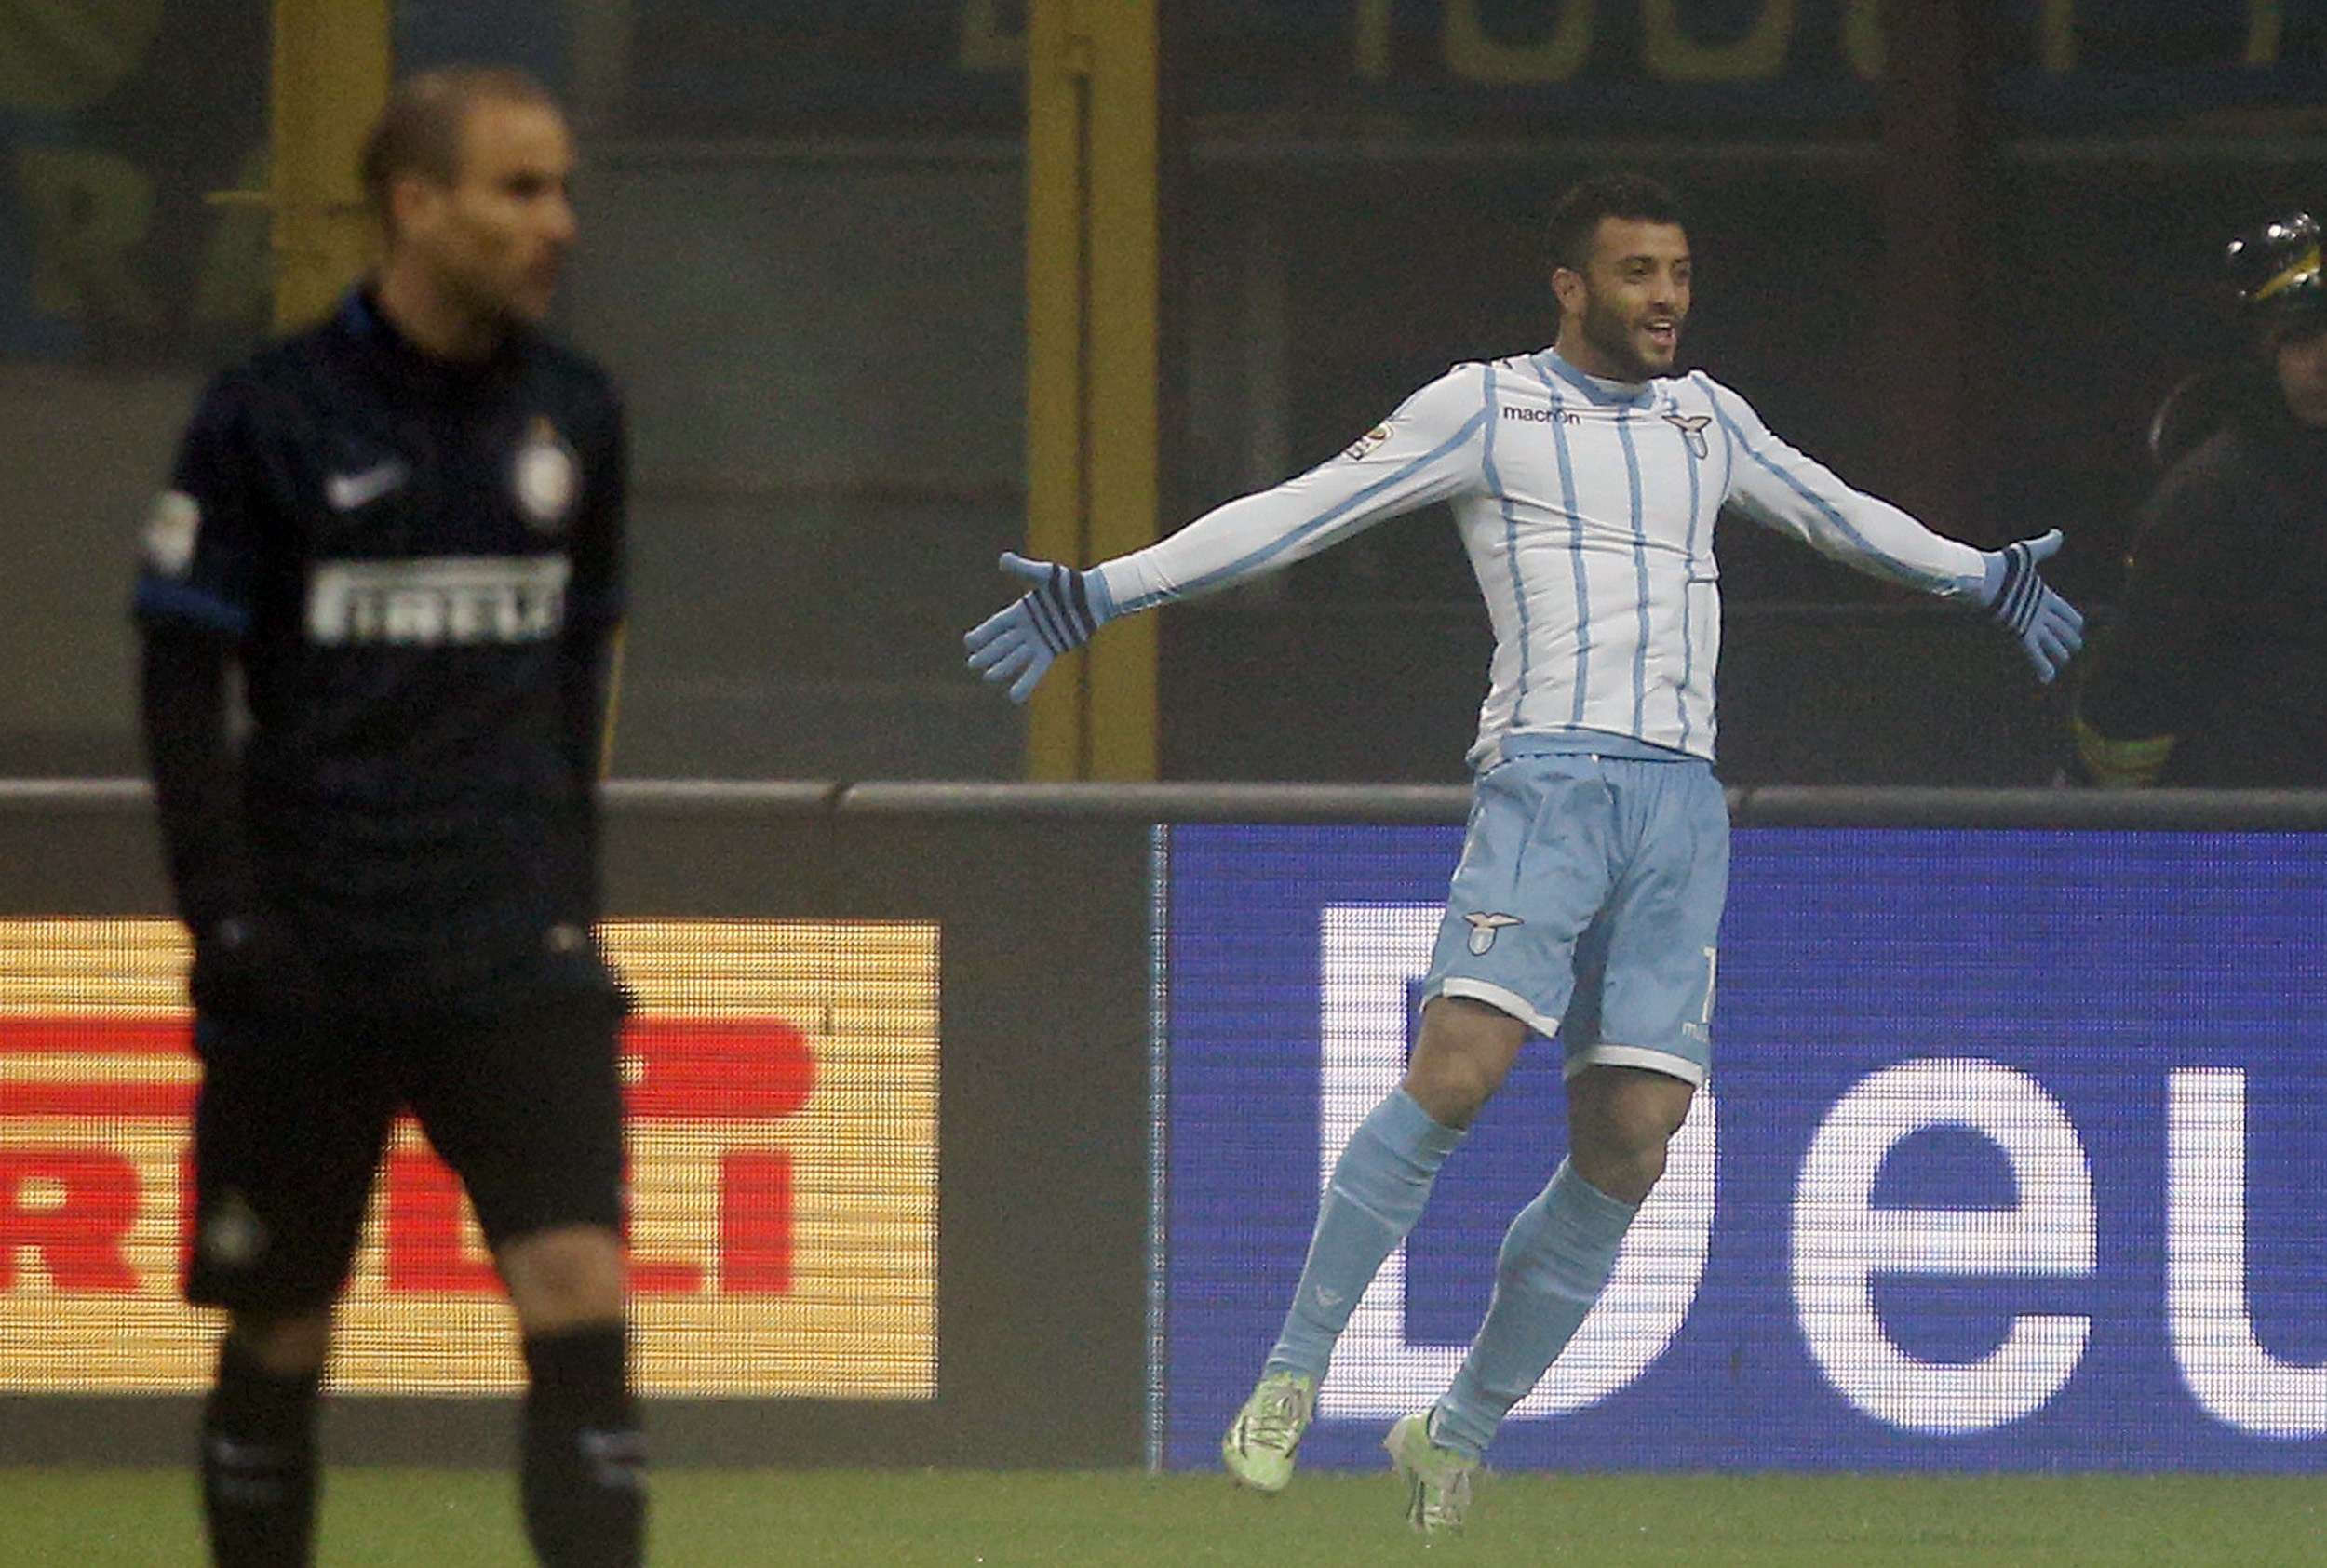 Lazio's Felipe Anderson celebrates after scoring against Inter Milan during their Italian Serie A soccer match at the San Siro stadium in Milan December 21, 2014. REUTERS/Alessandro Garofalo (ITALY - Tags: SPORT SOCCER) Foto: ALESSANDRO GAROFALO/REUTERS